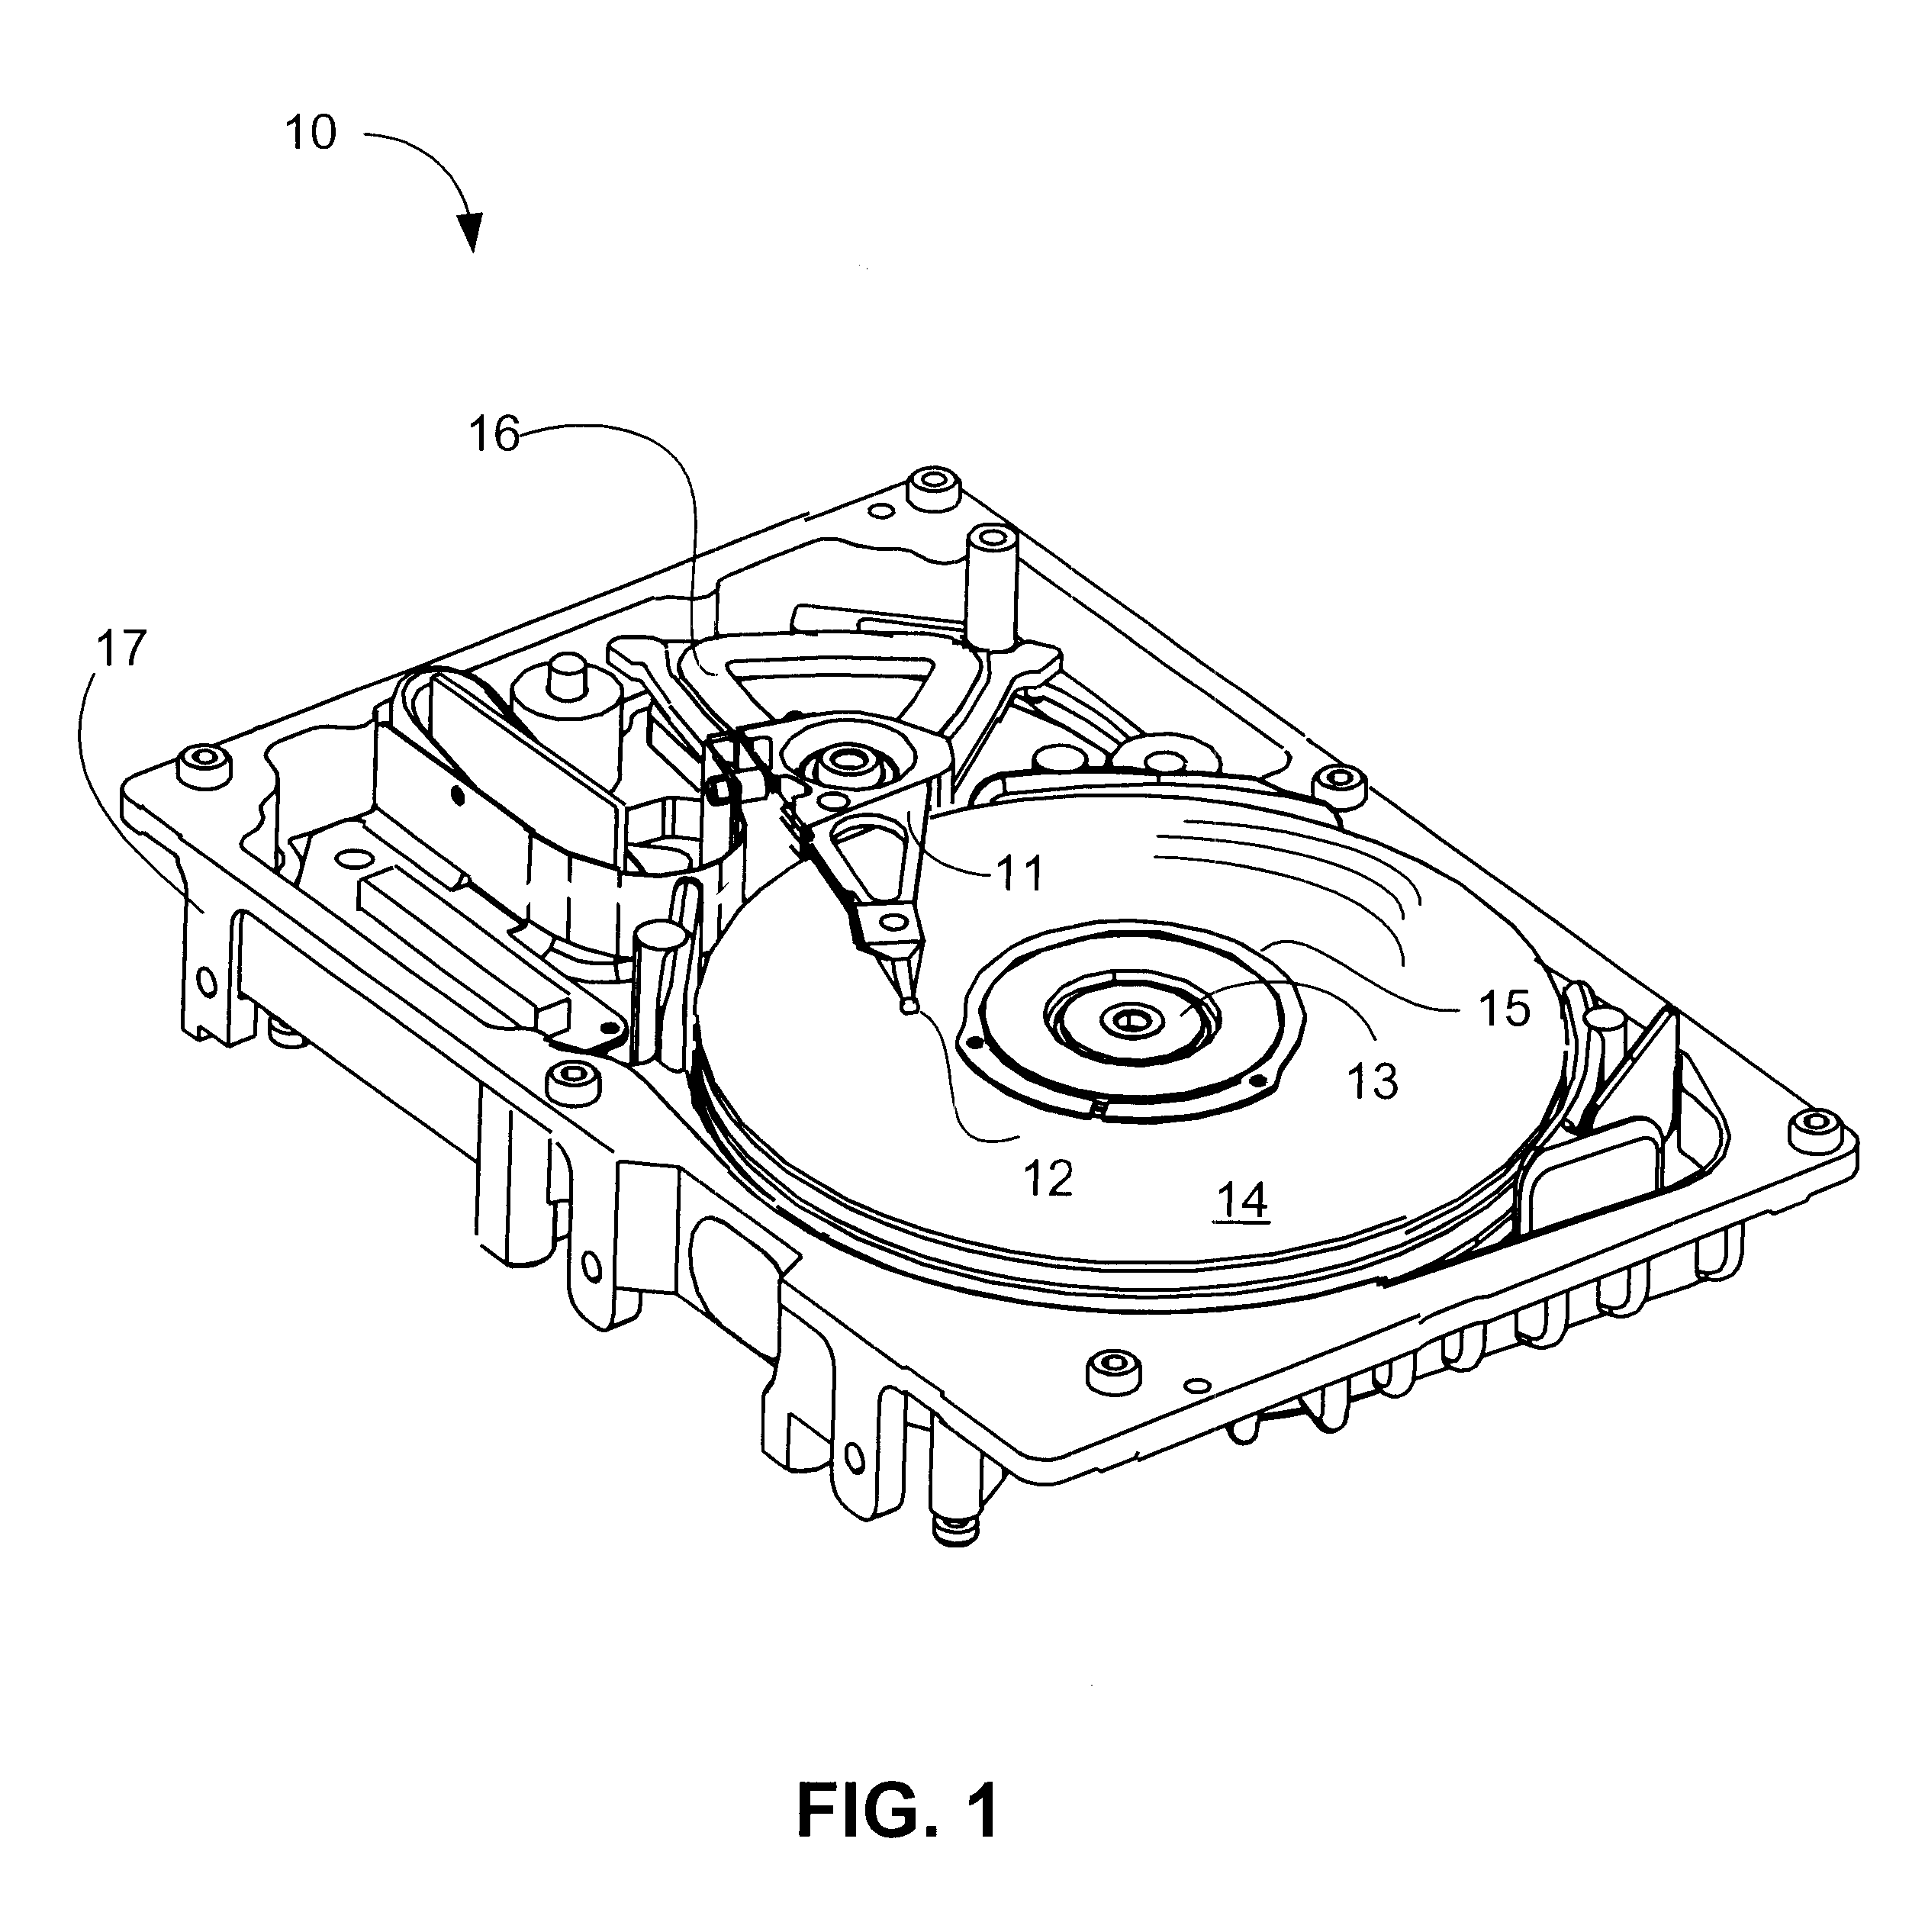 patent us6522498 - magnetic shield for flux leakage reduction from spindle motor